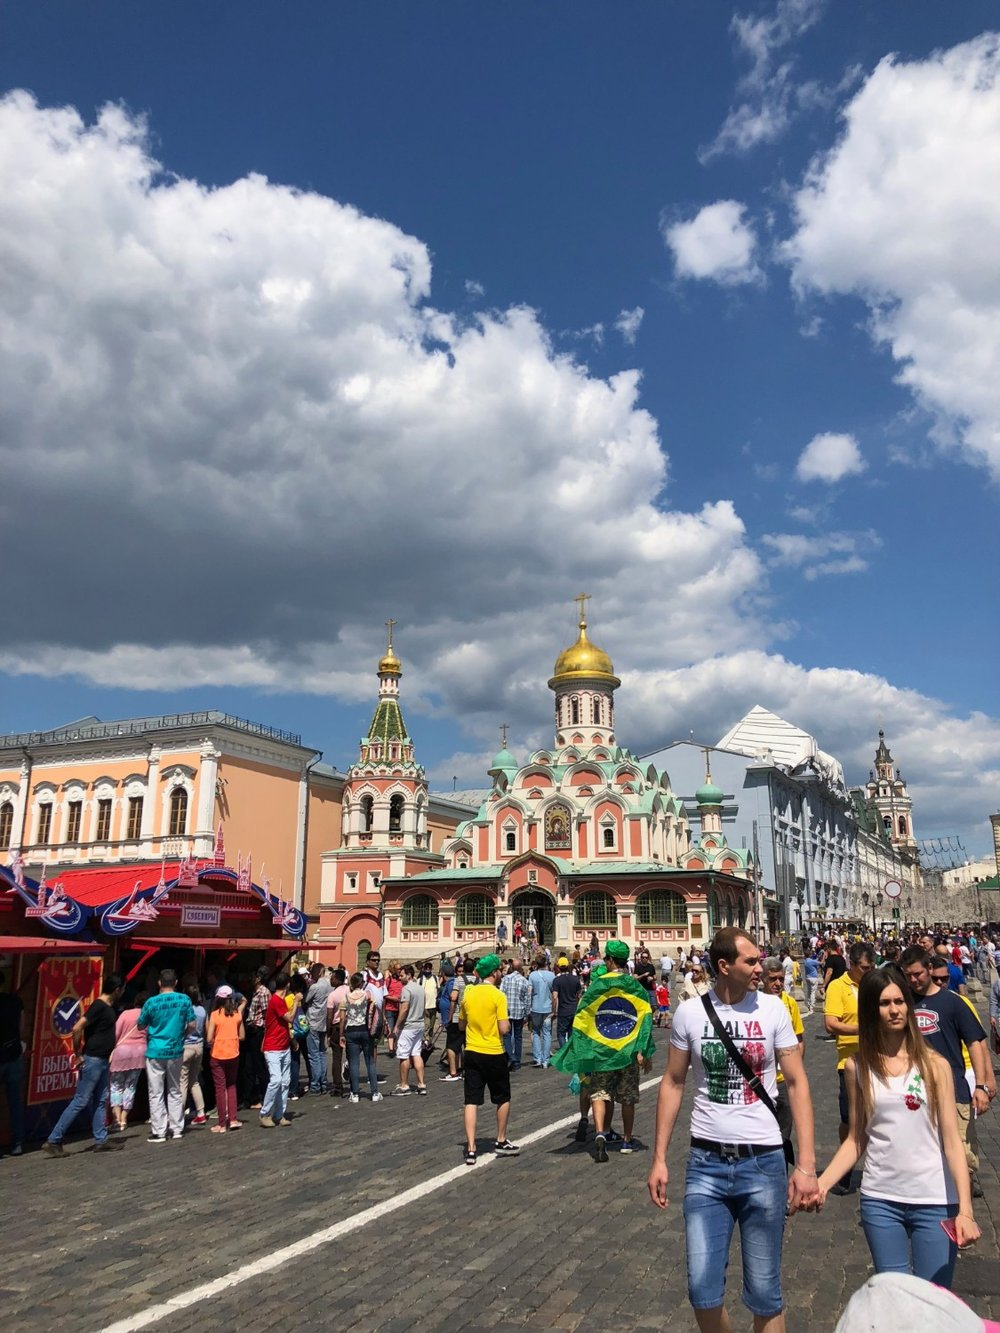 The crowds at the Red Square during the World Cup 2018 in Moscow, Russia. boldlygotravel.com